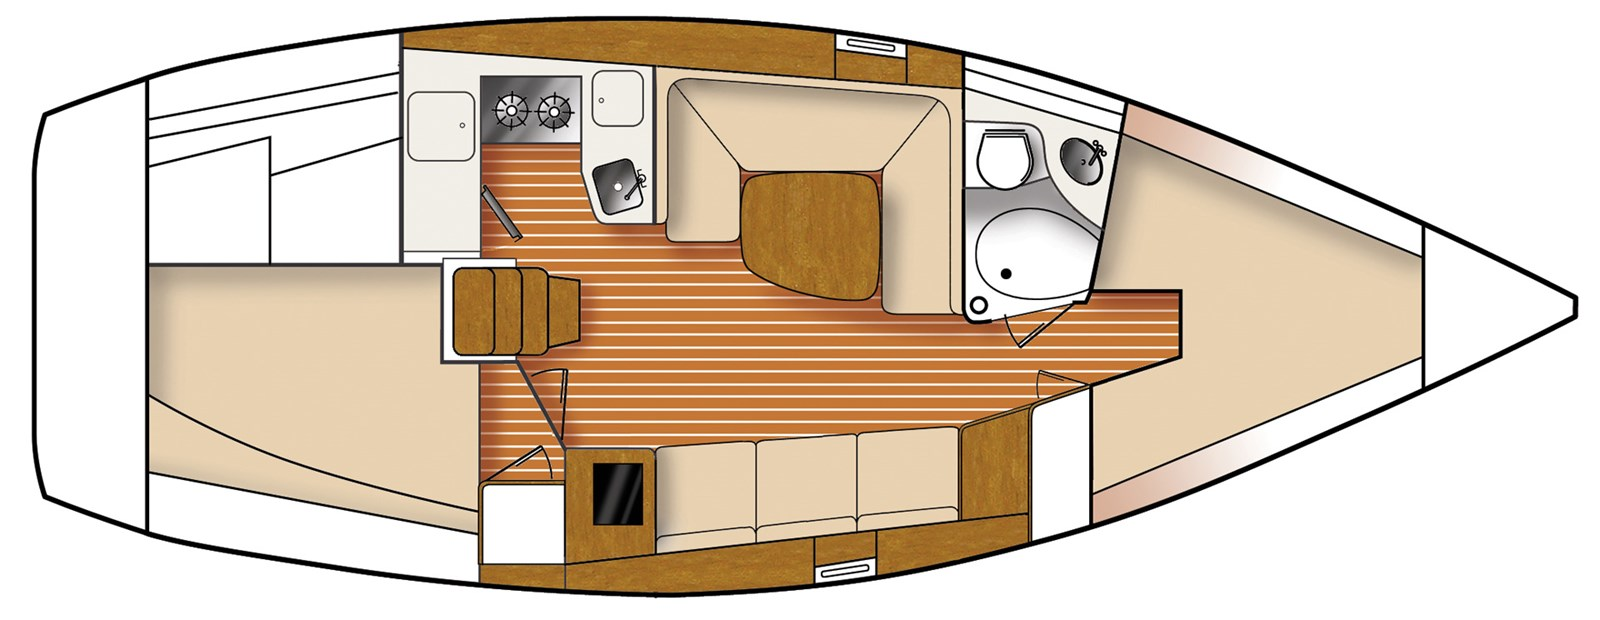 Interior Layout 2020 CATALINA  Sloop 2860388